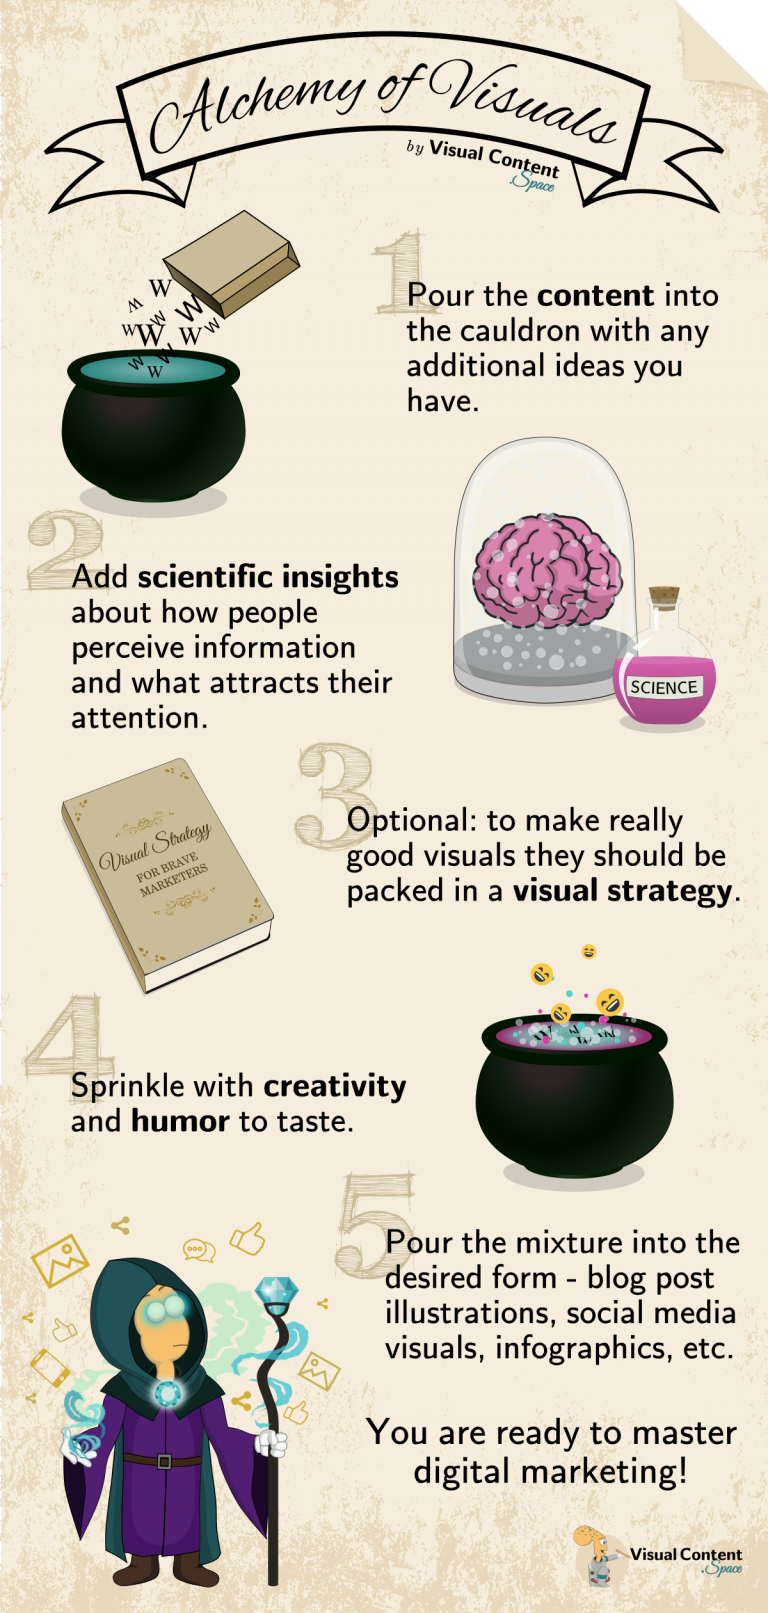 Visual Content Space Alchely of Visuals Infographic